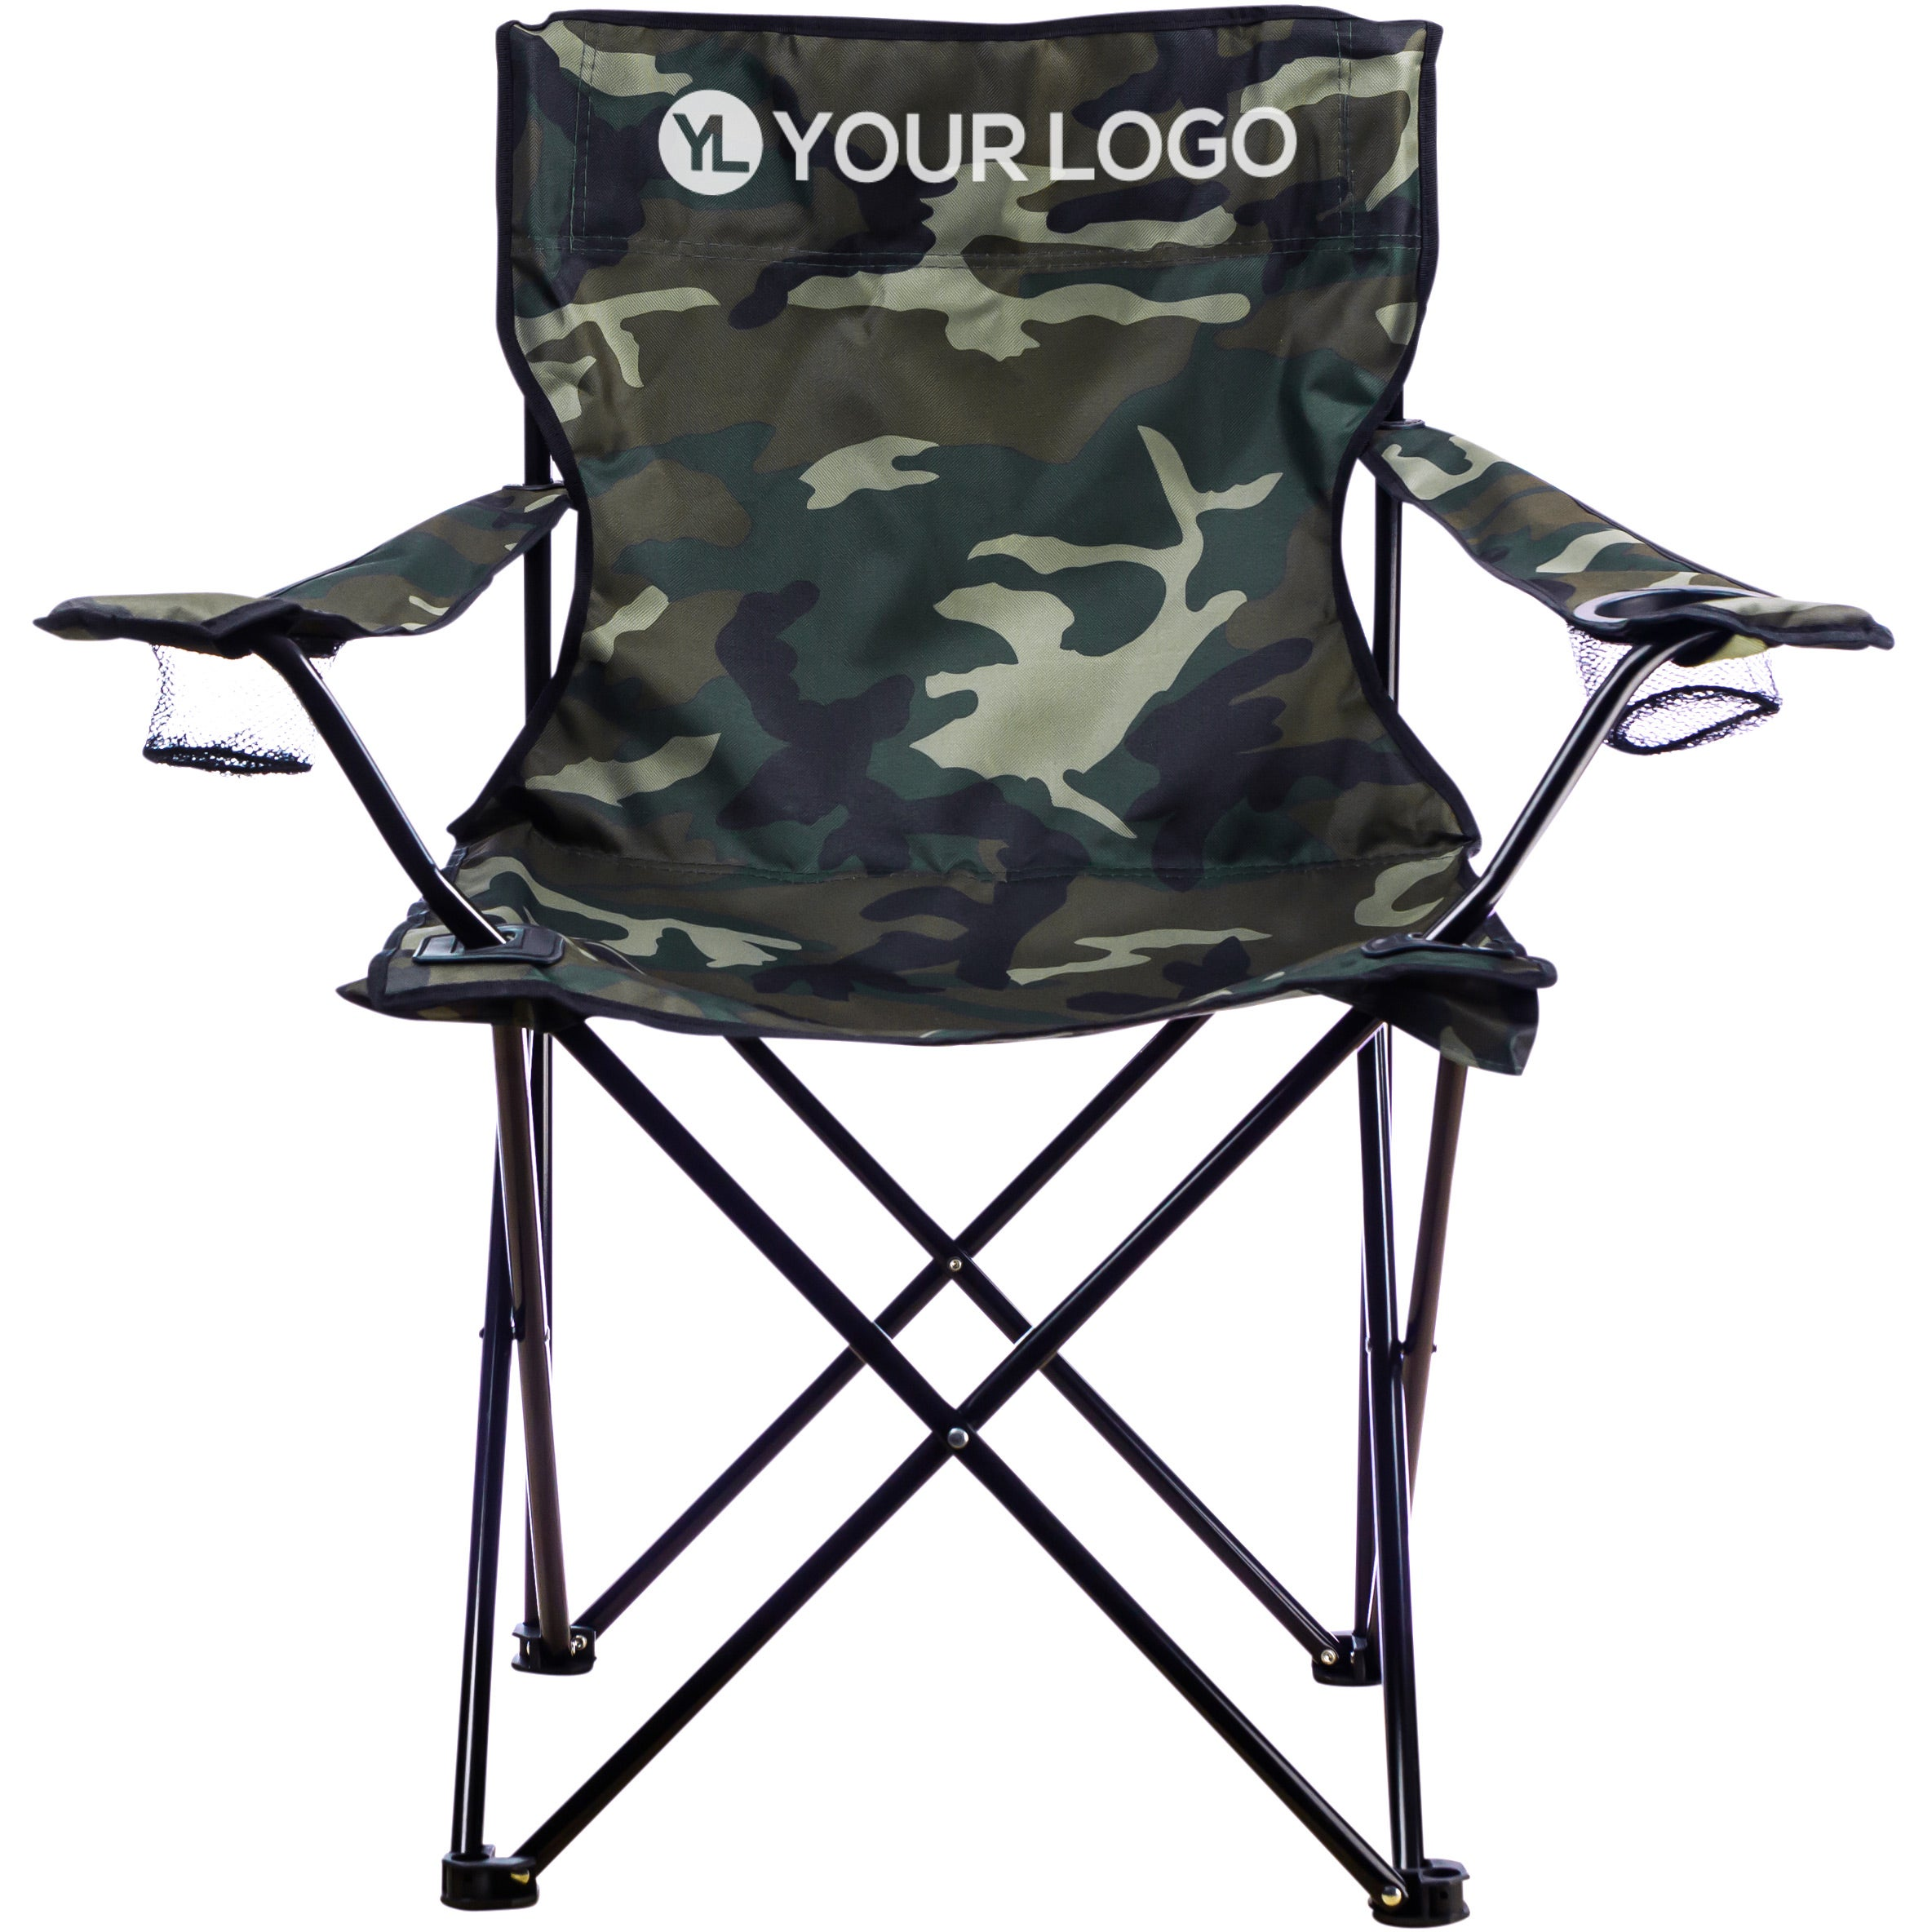 Custom Folding Chairs Outdoor Chairs Quality Logo Products